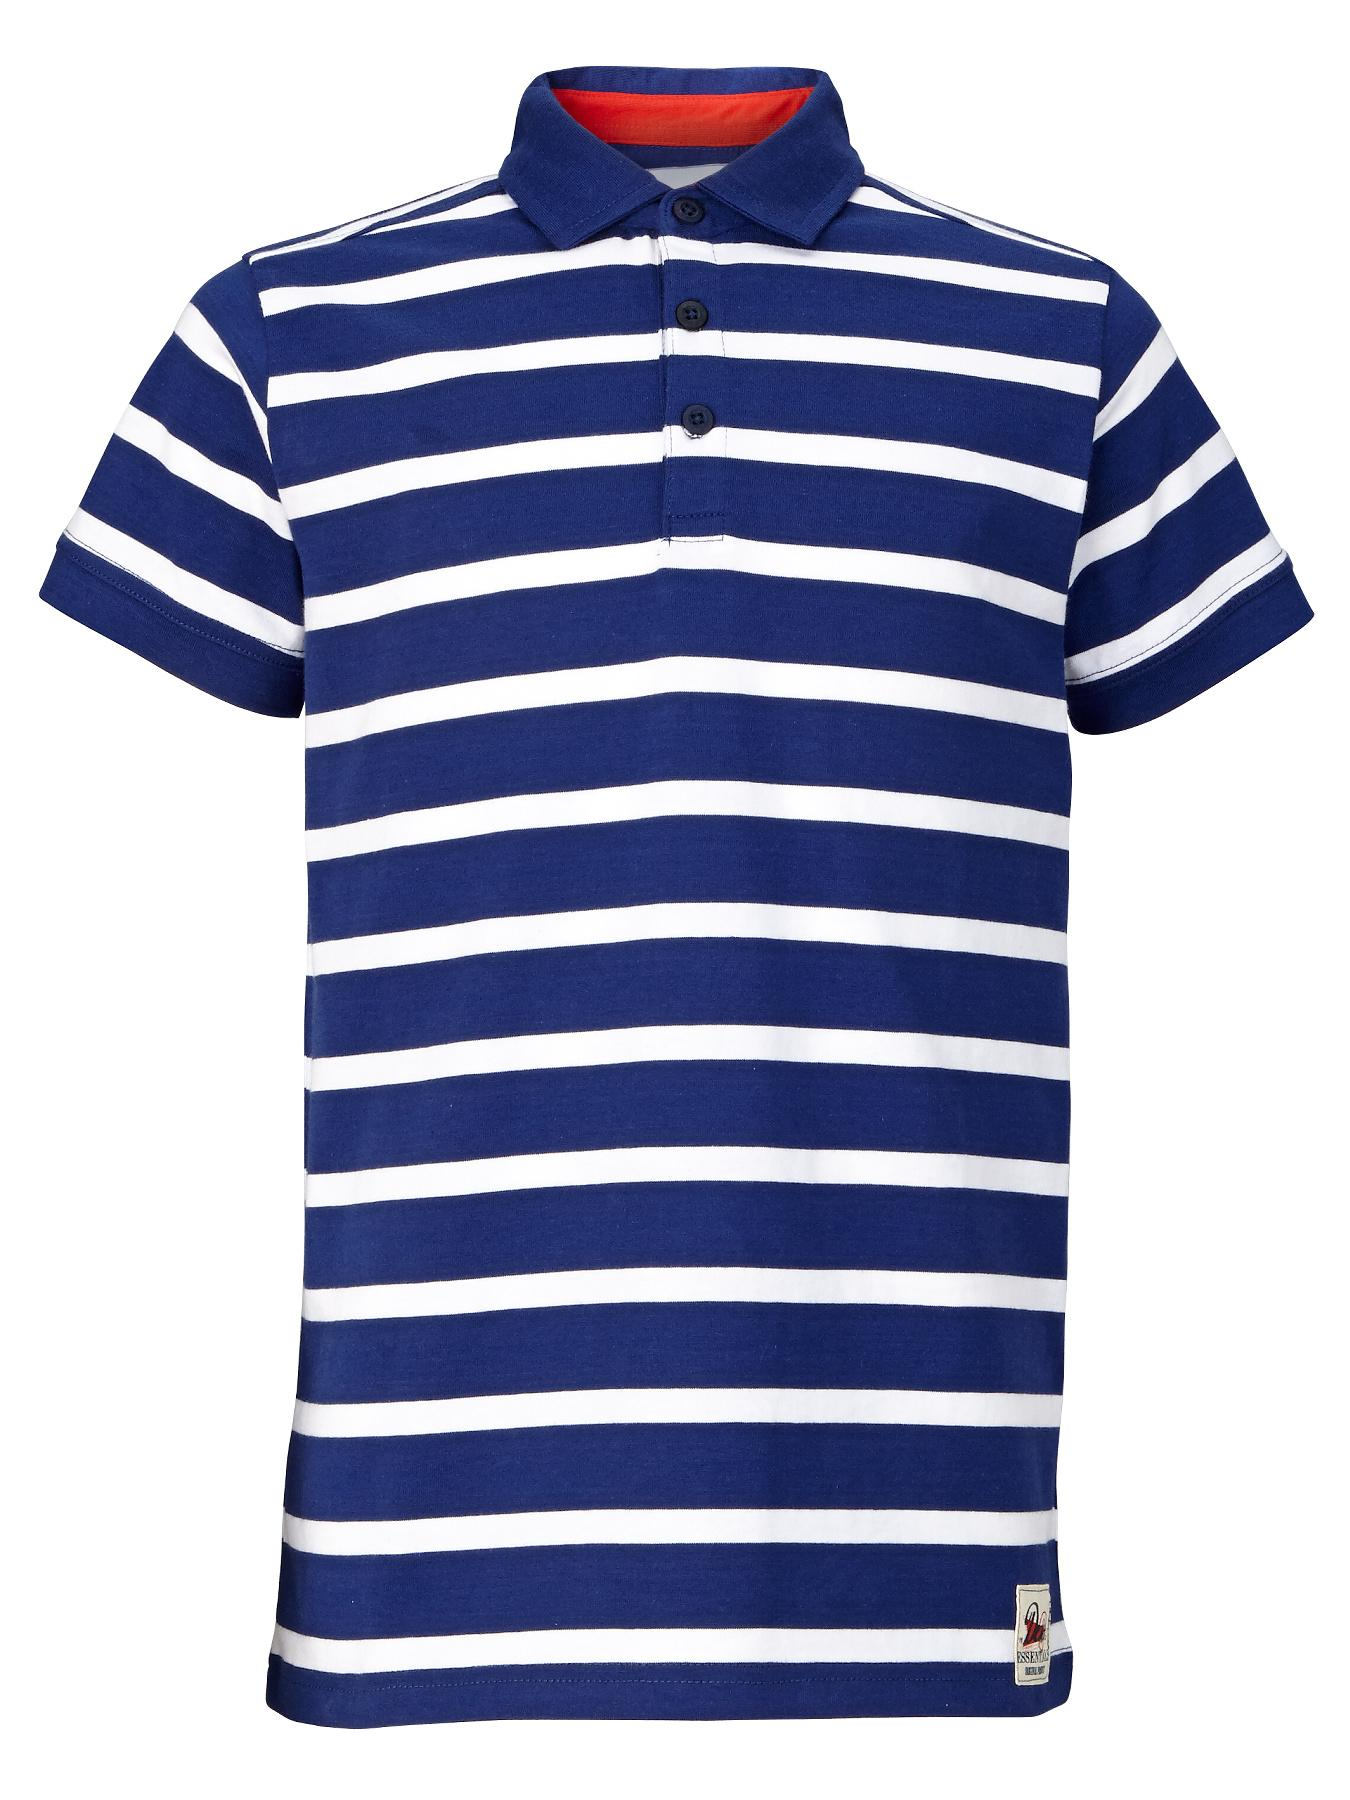 Boys Everyday Essentials Stripe Polo Shirt, Navy at Littlewoods